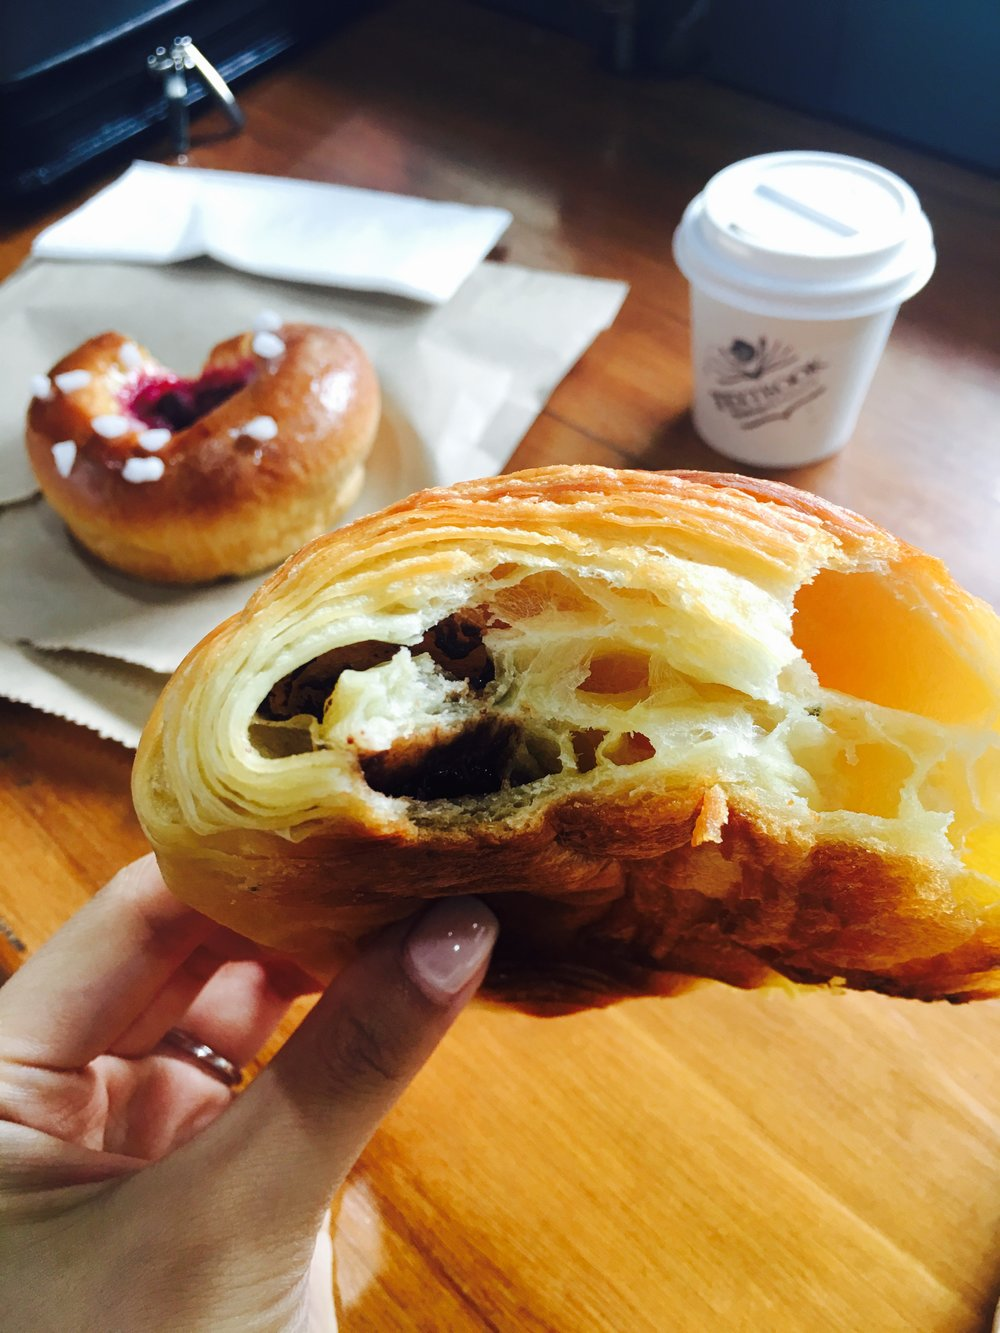 Textbook Boulangerie Patisserie in Alexandria. A chocolate croissant and piccolo go so well together for a quick Saturday treat.